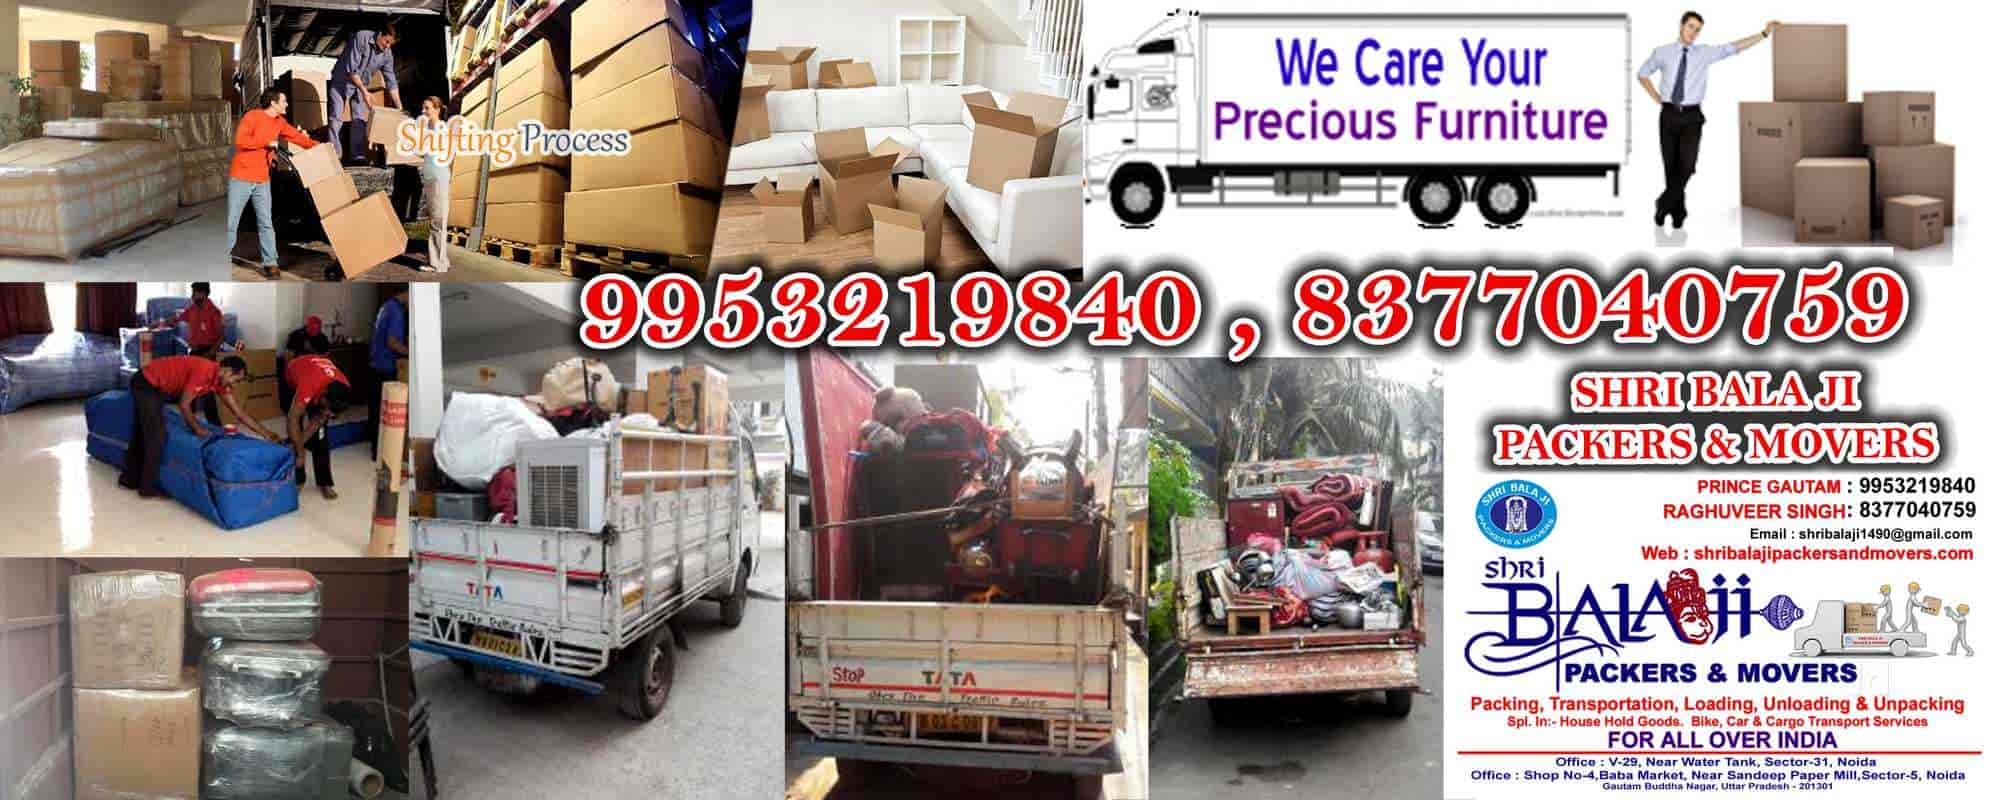 Shri Balaji Packers & Movers, Noida Sector 31 - Packers